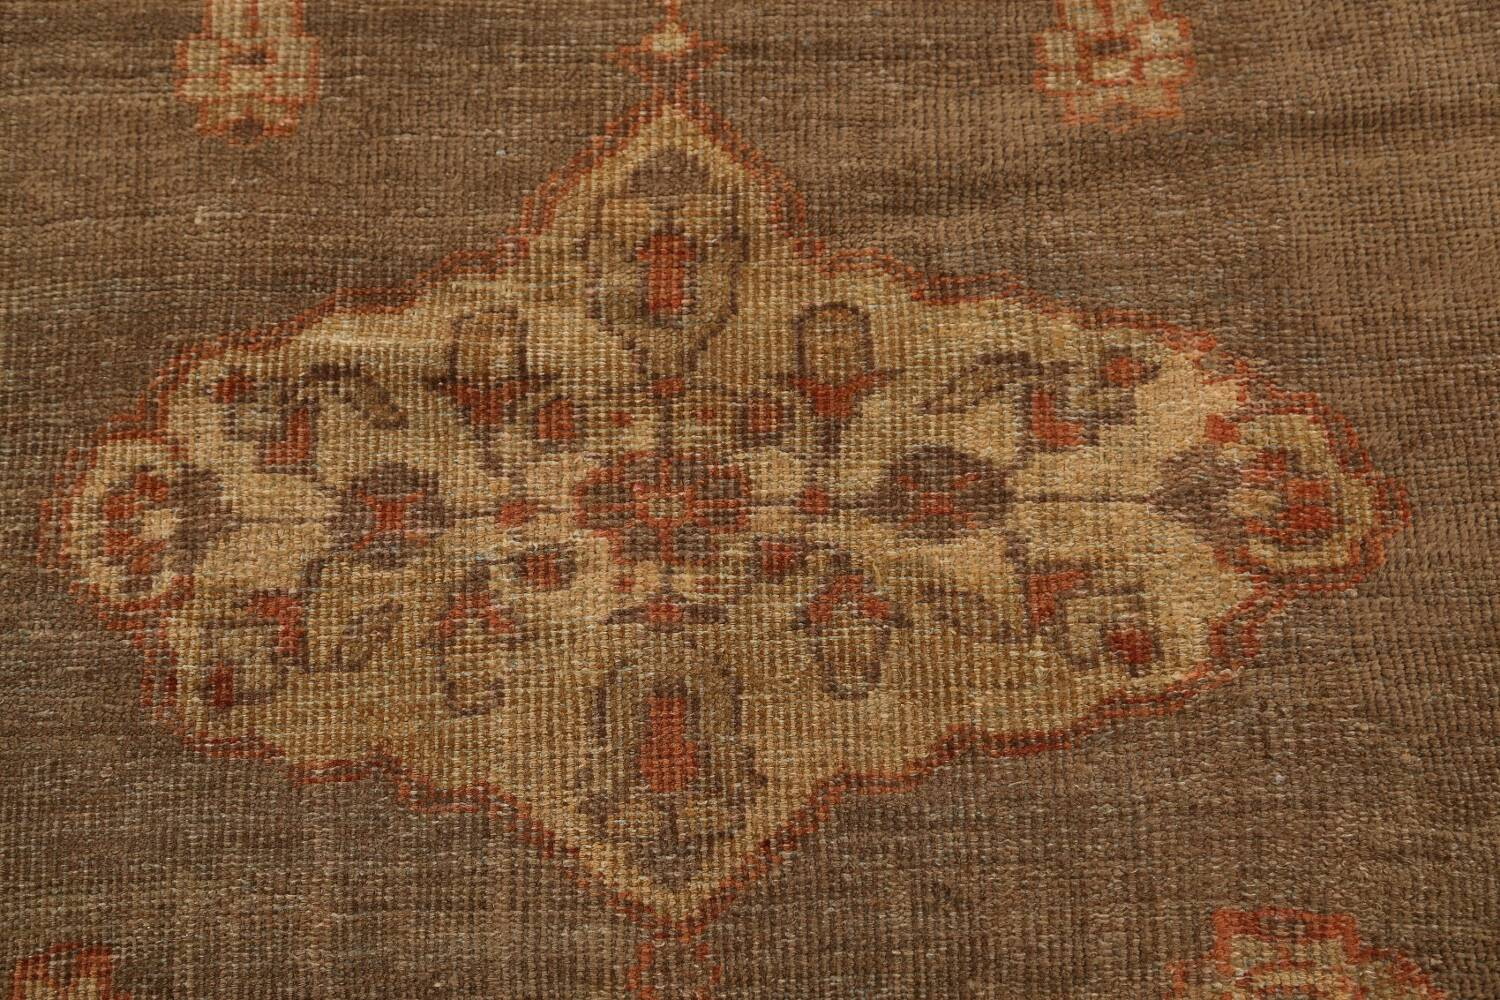 Pre-1900 Antique Sultanabad Persian Rug 13x20 image 10